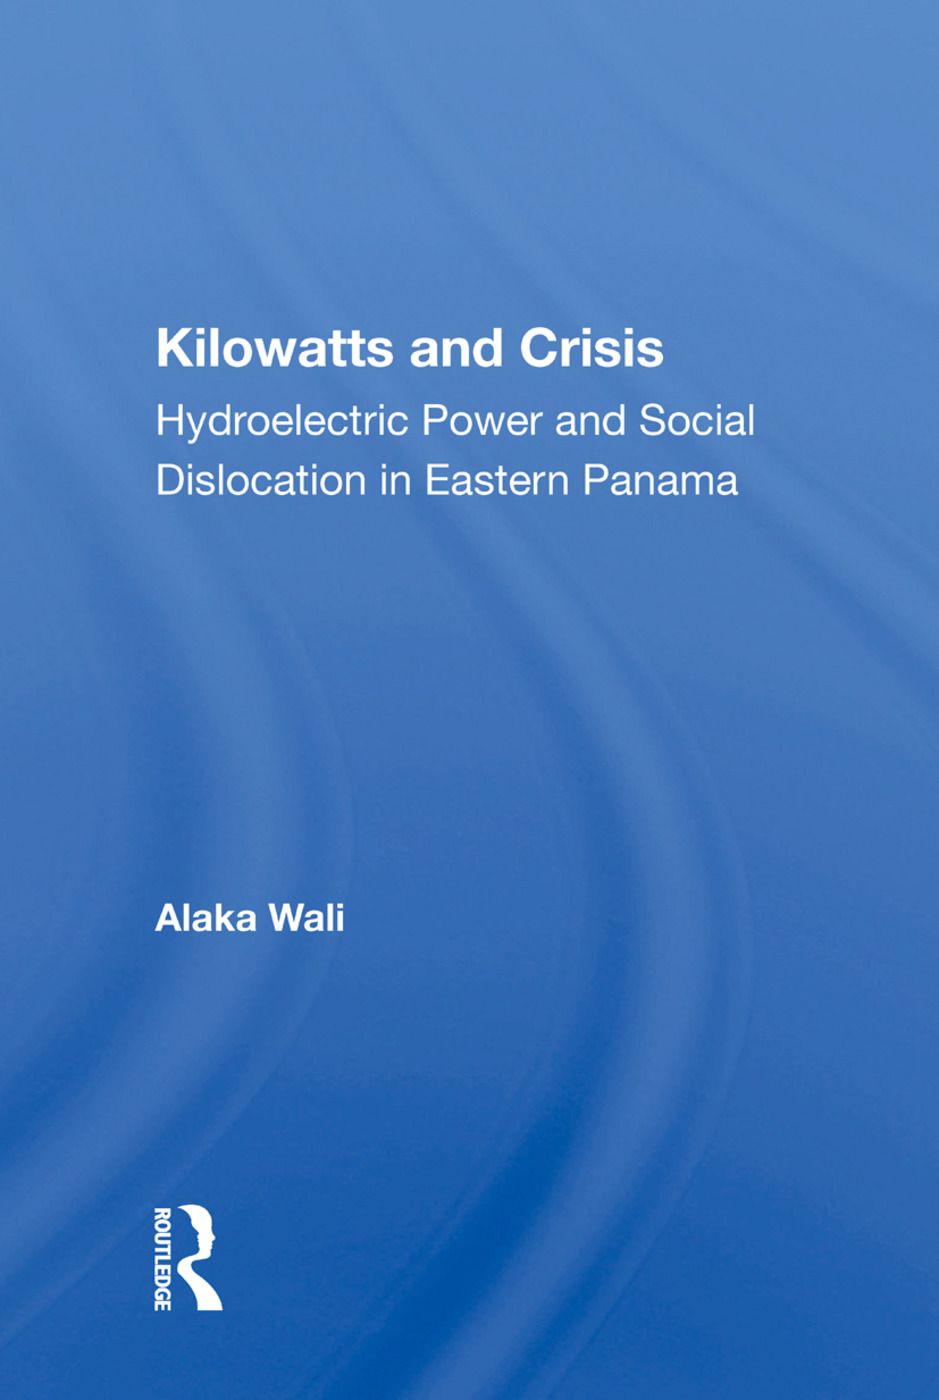 Kilowatts And Crisis: Hydroelectric Power And Social Dislocation In Eastern Panama book cover